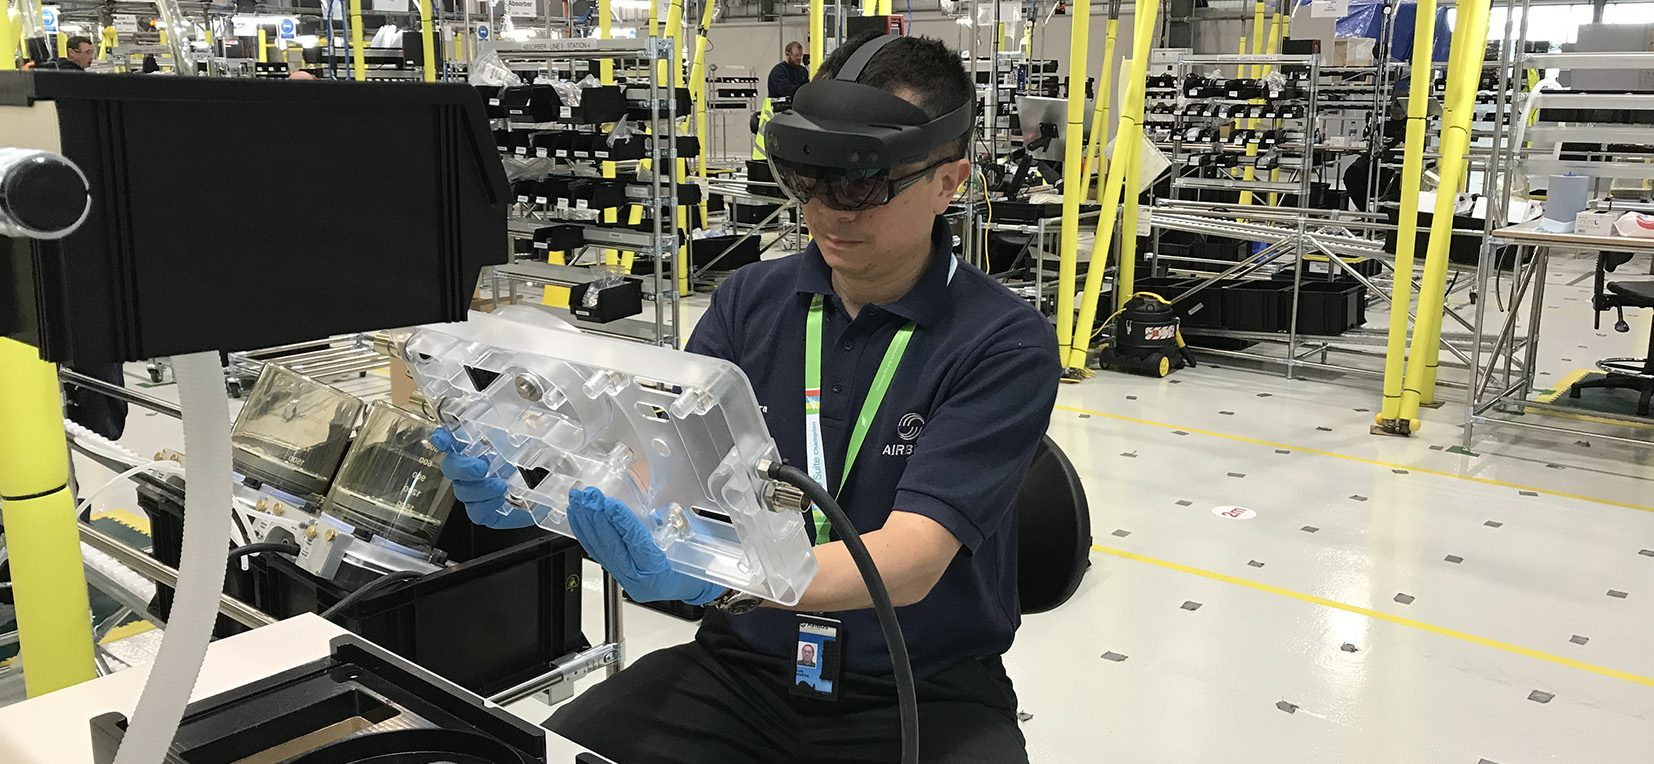 Augmented Reality - 1 - Airbus employees using VEC technology as part of the VentilatorChallengeUK consortium project